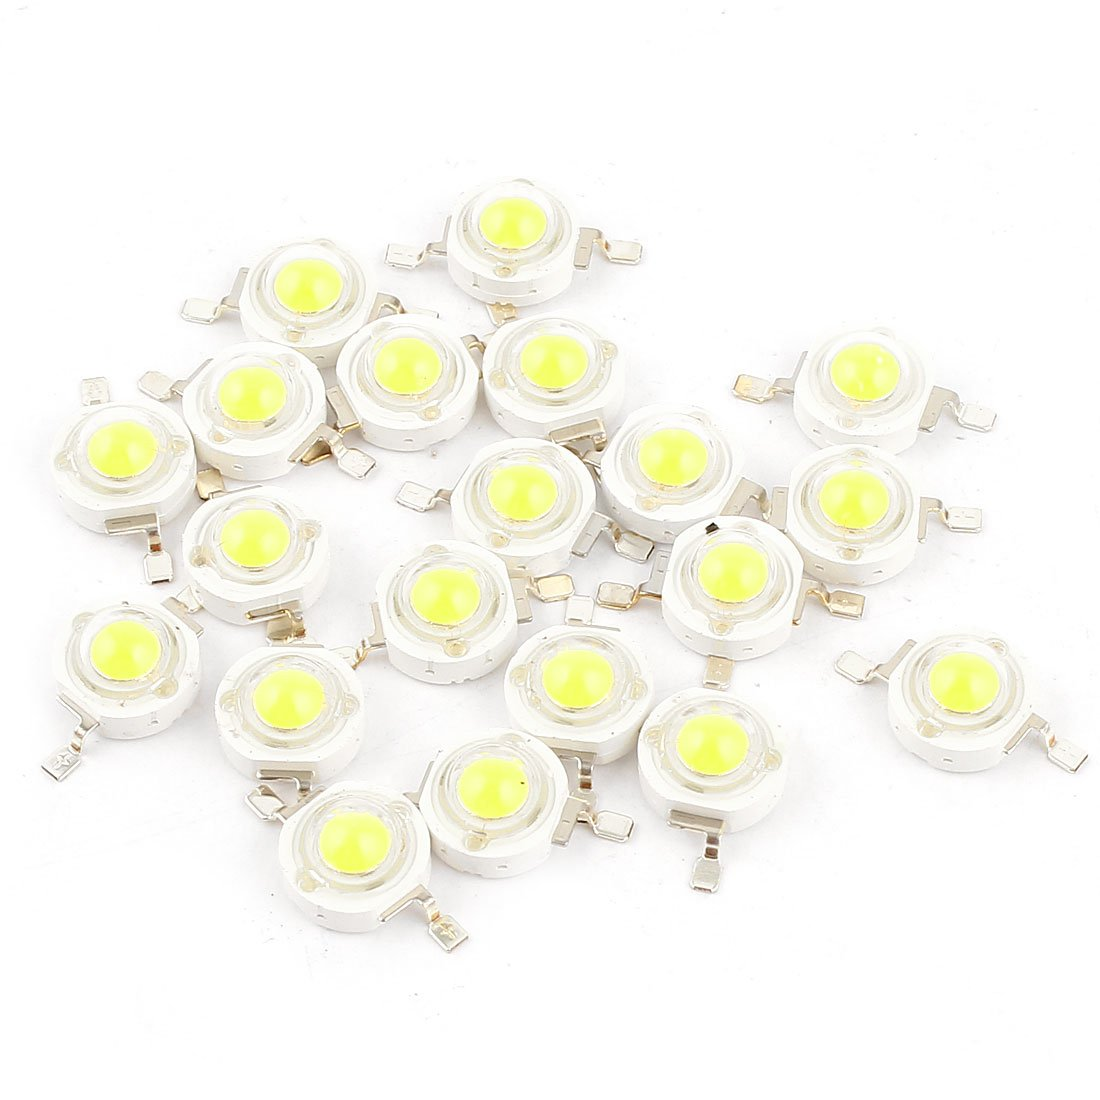 Uxcell A14073100ux0204 Pure White Light Smd Led Bead Chip Bulb Lamp 3v 3w Amber Power 55lm Rapid Online 30 36v 350ma 1w Pack Of 20 Industrial Scientific